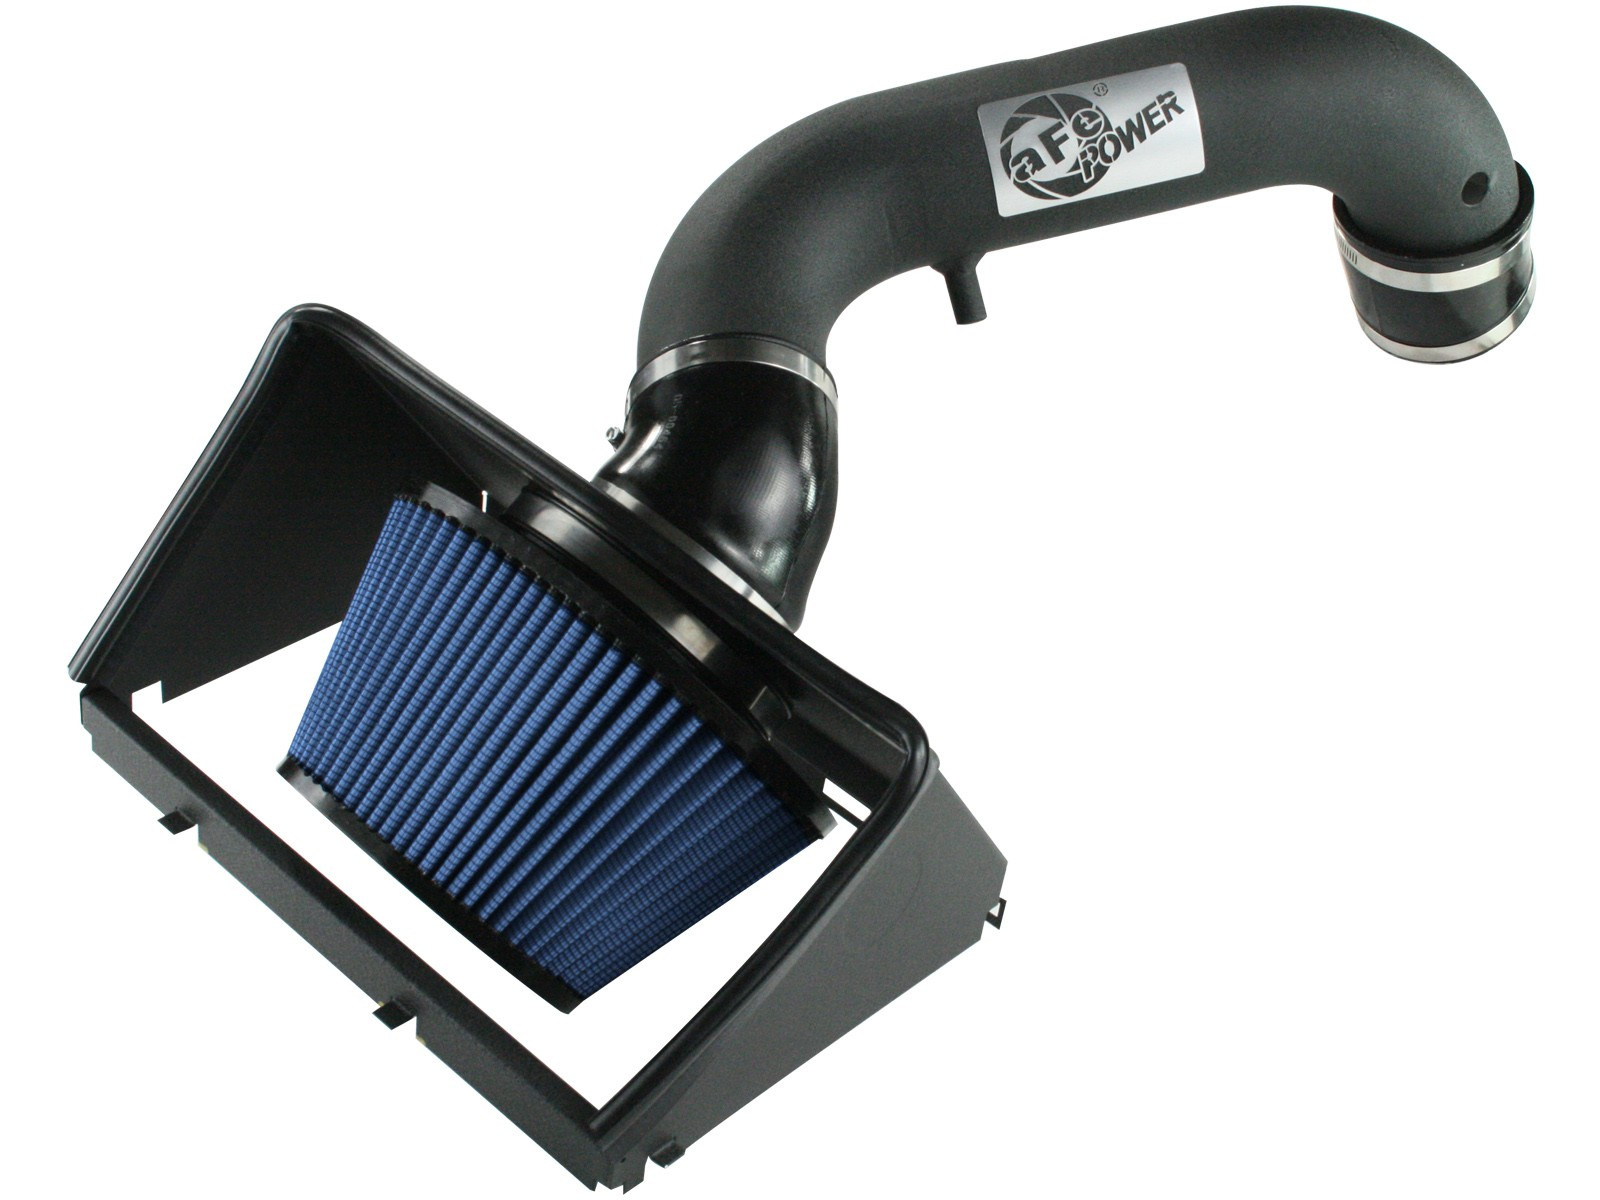 Cold Air Intake For Dodge Ram 1500 5.7 Hemi >> Magnum Force Stage 2 Cold Air Intake System W Pro 5r Filter Media